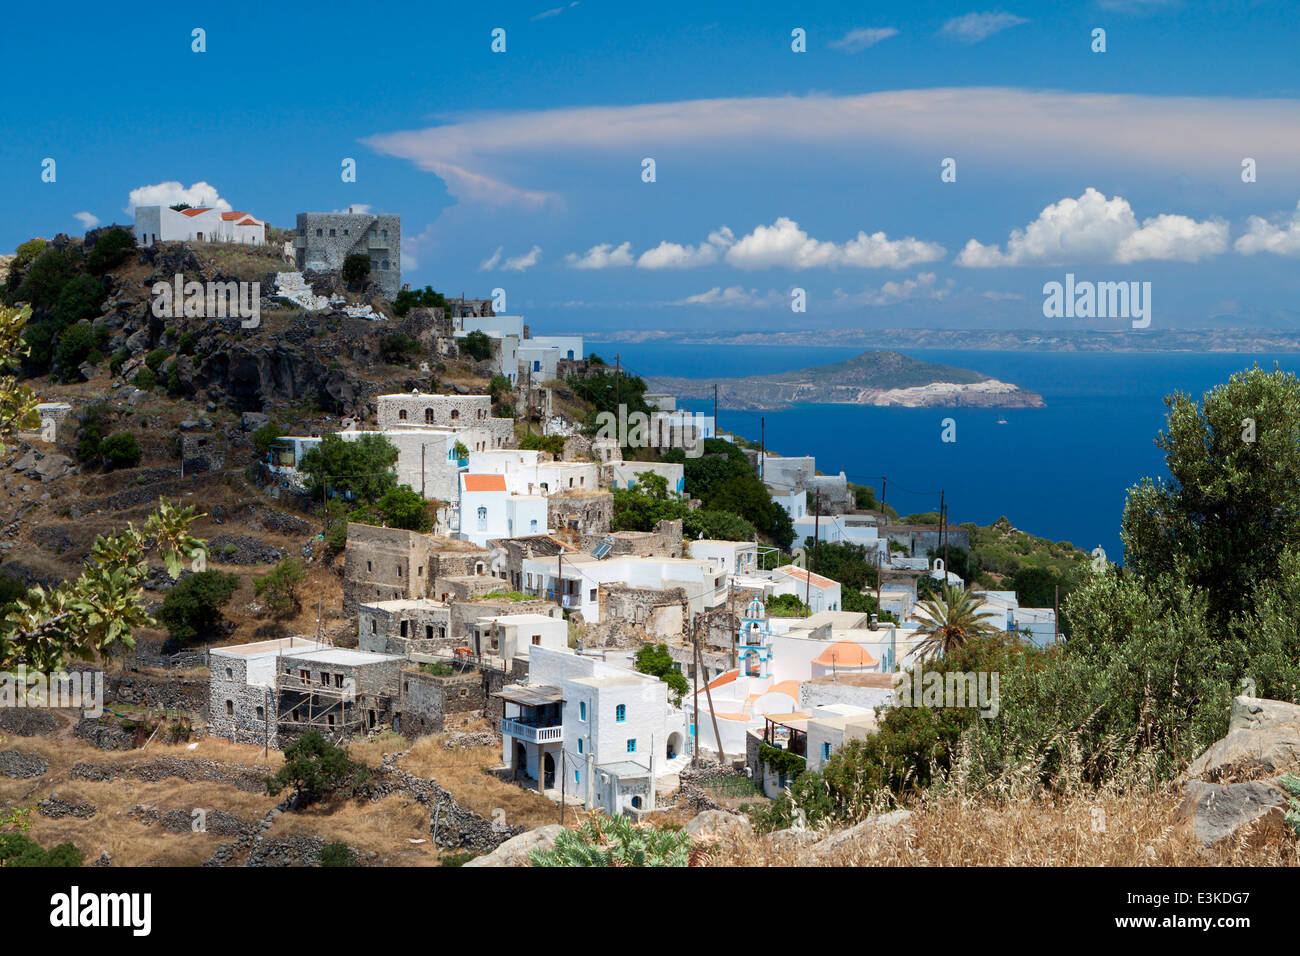 Traditional village of Emborios at Nisyros island in Greece - Stock Image